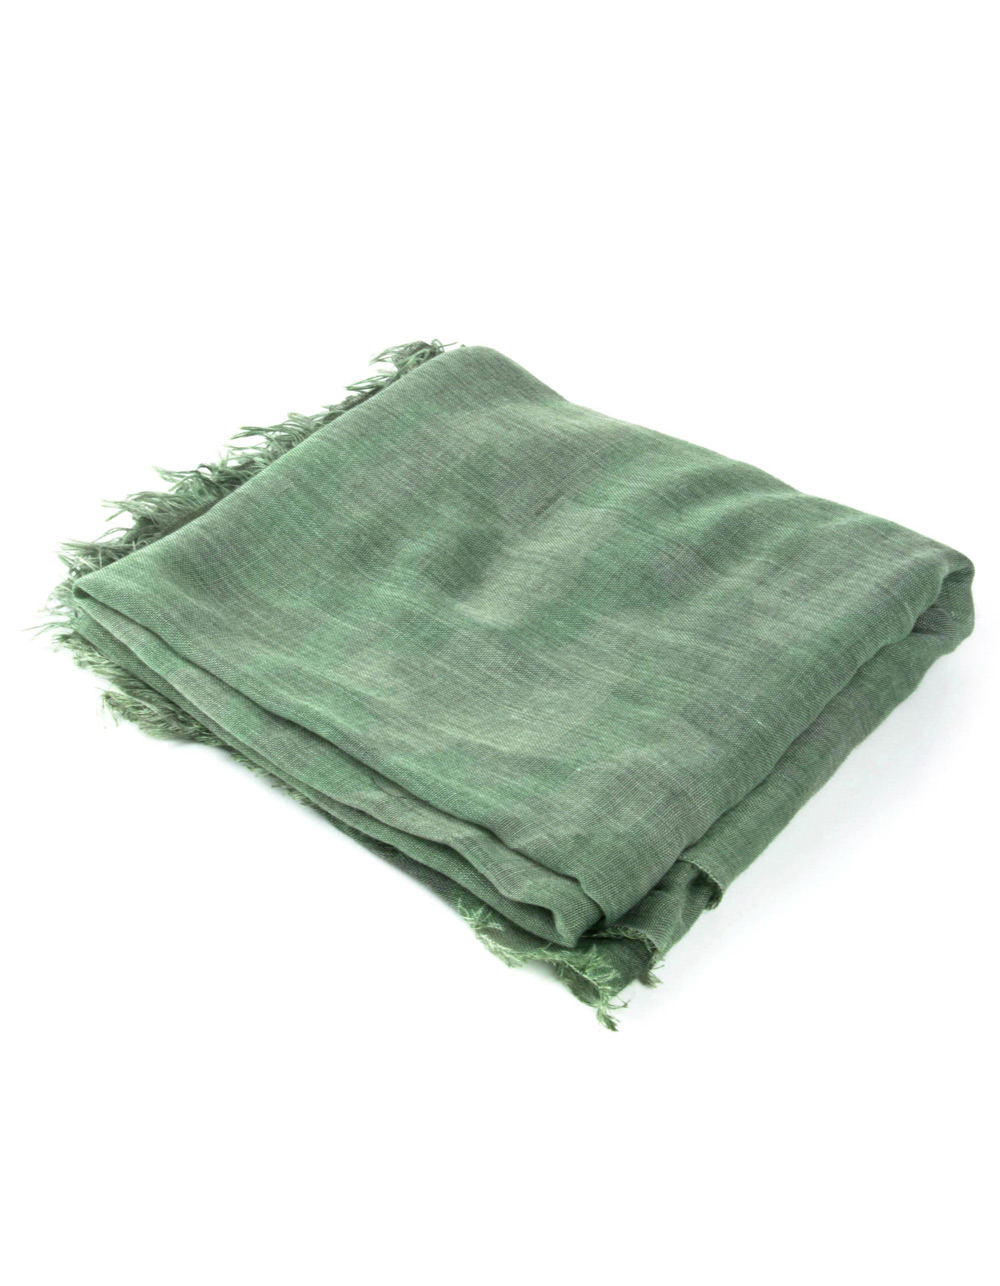 Green camouflage foulard  - Backside